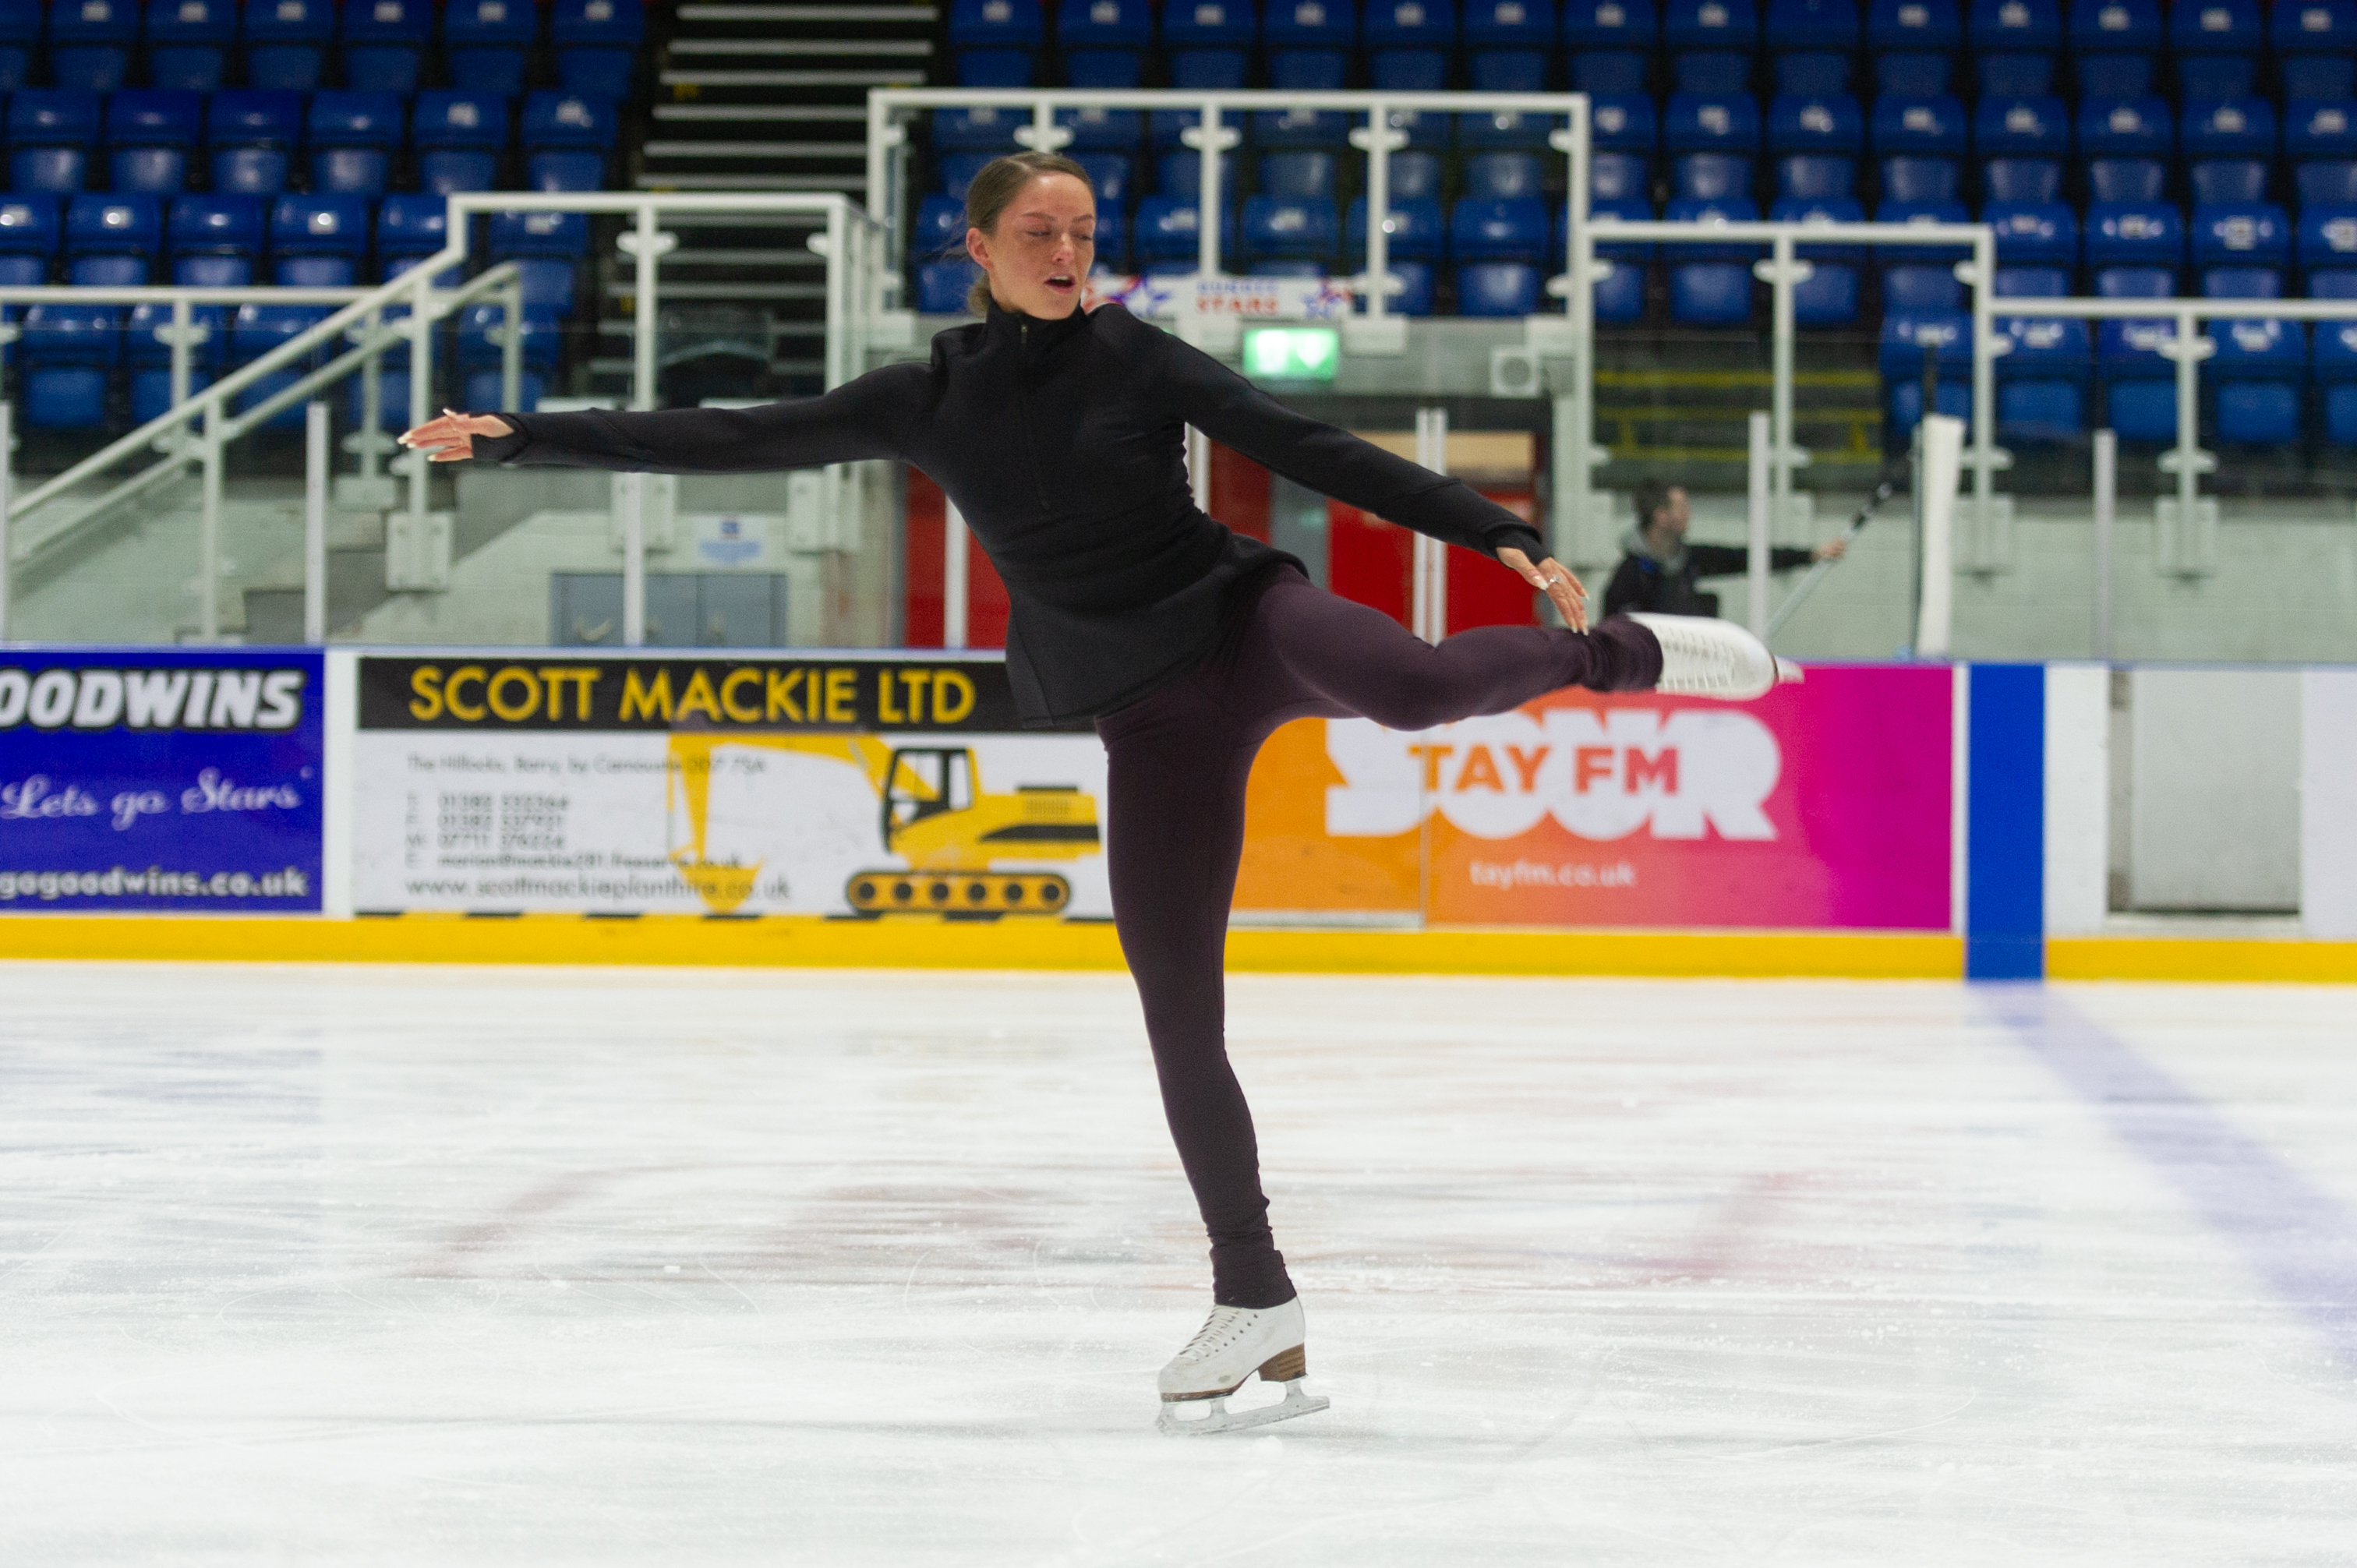 Natasha McKay is in Japan for the World Figure Skating Championships.